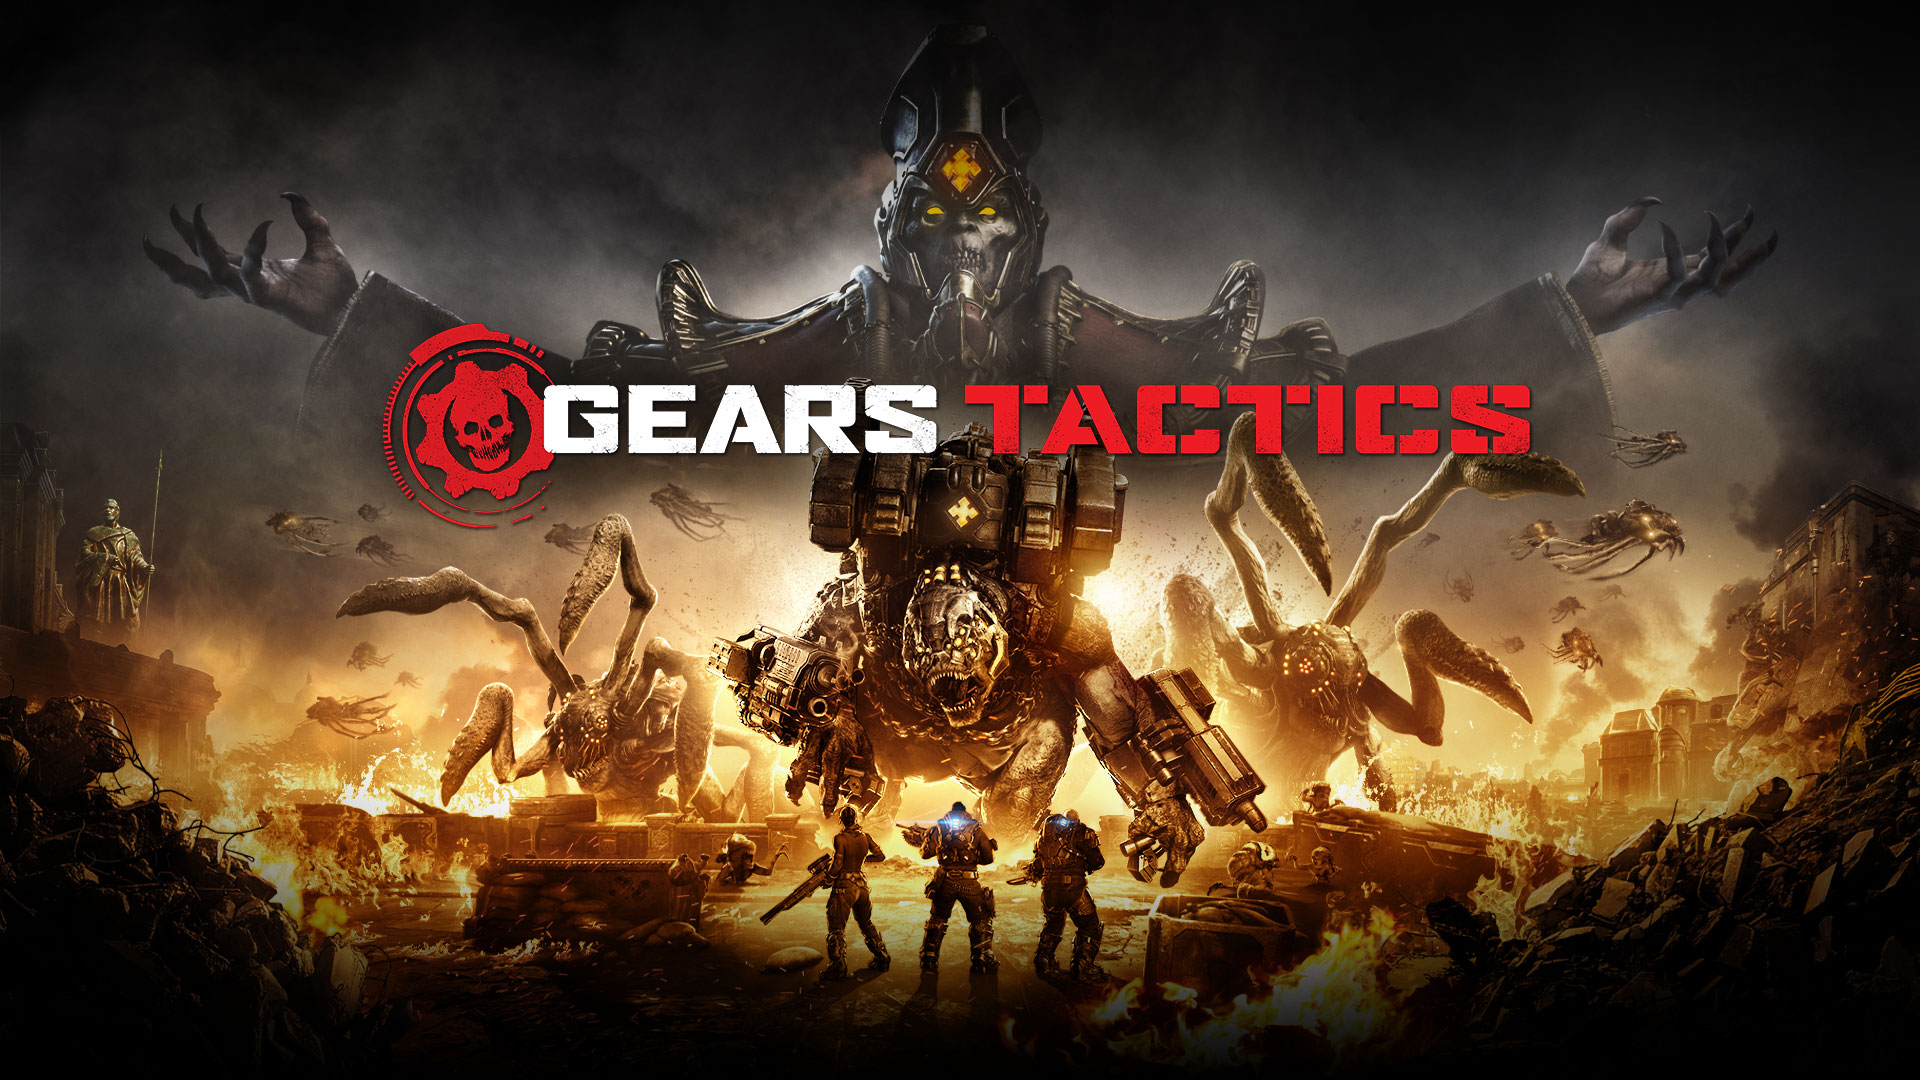 Gears Tactics logo, Three characters in heavy armor face large monsters in a burning war zone